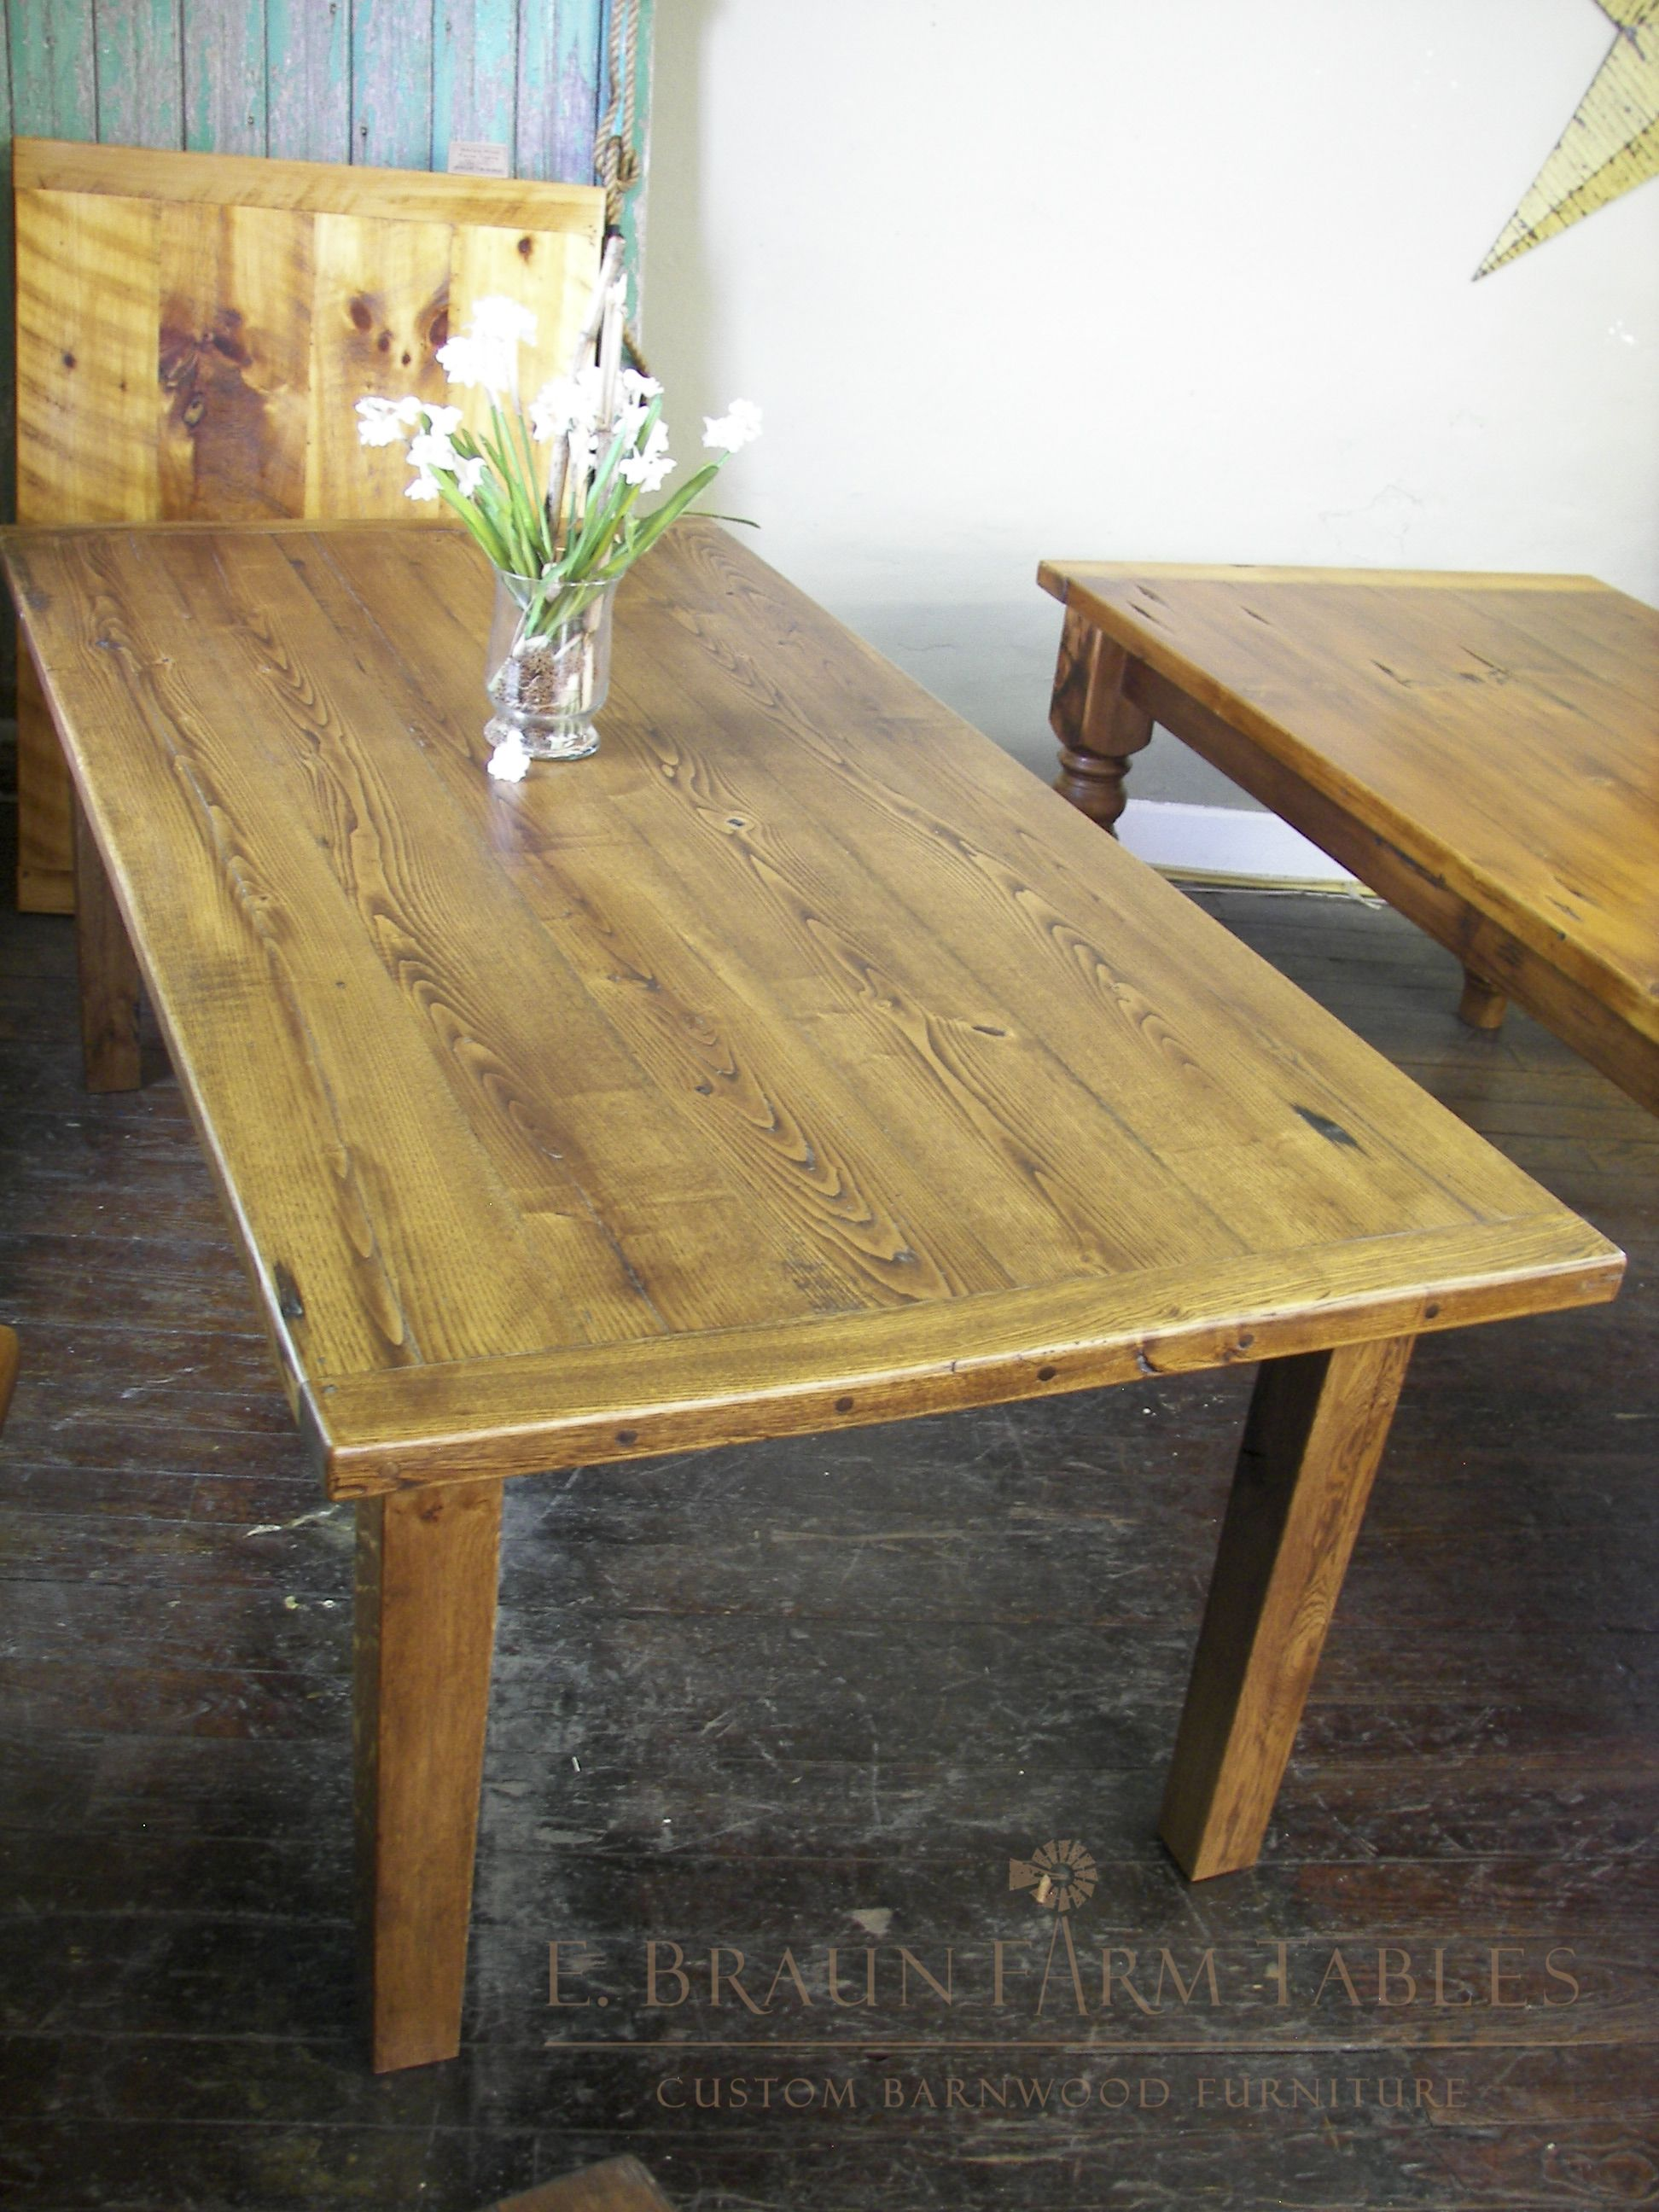 Lovely 7u0027 Long Reclaimed American Chestnut Farm Table, Crafted By E. Braun Farm  Tables And Furniture™   We Use Wood From Dismantled Barns And Log Homes  Dating From ...